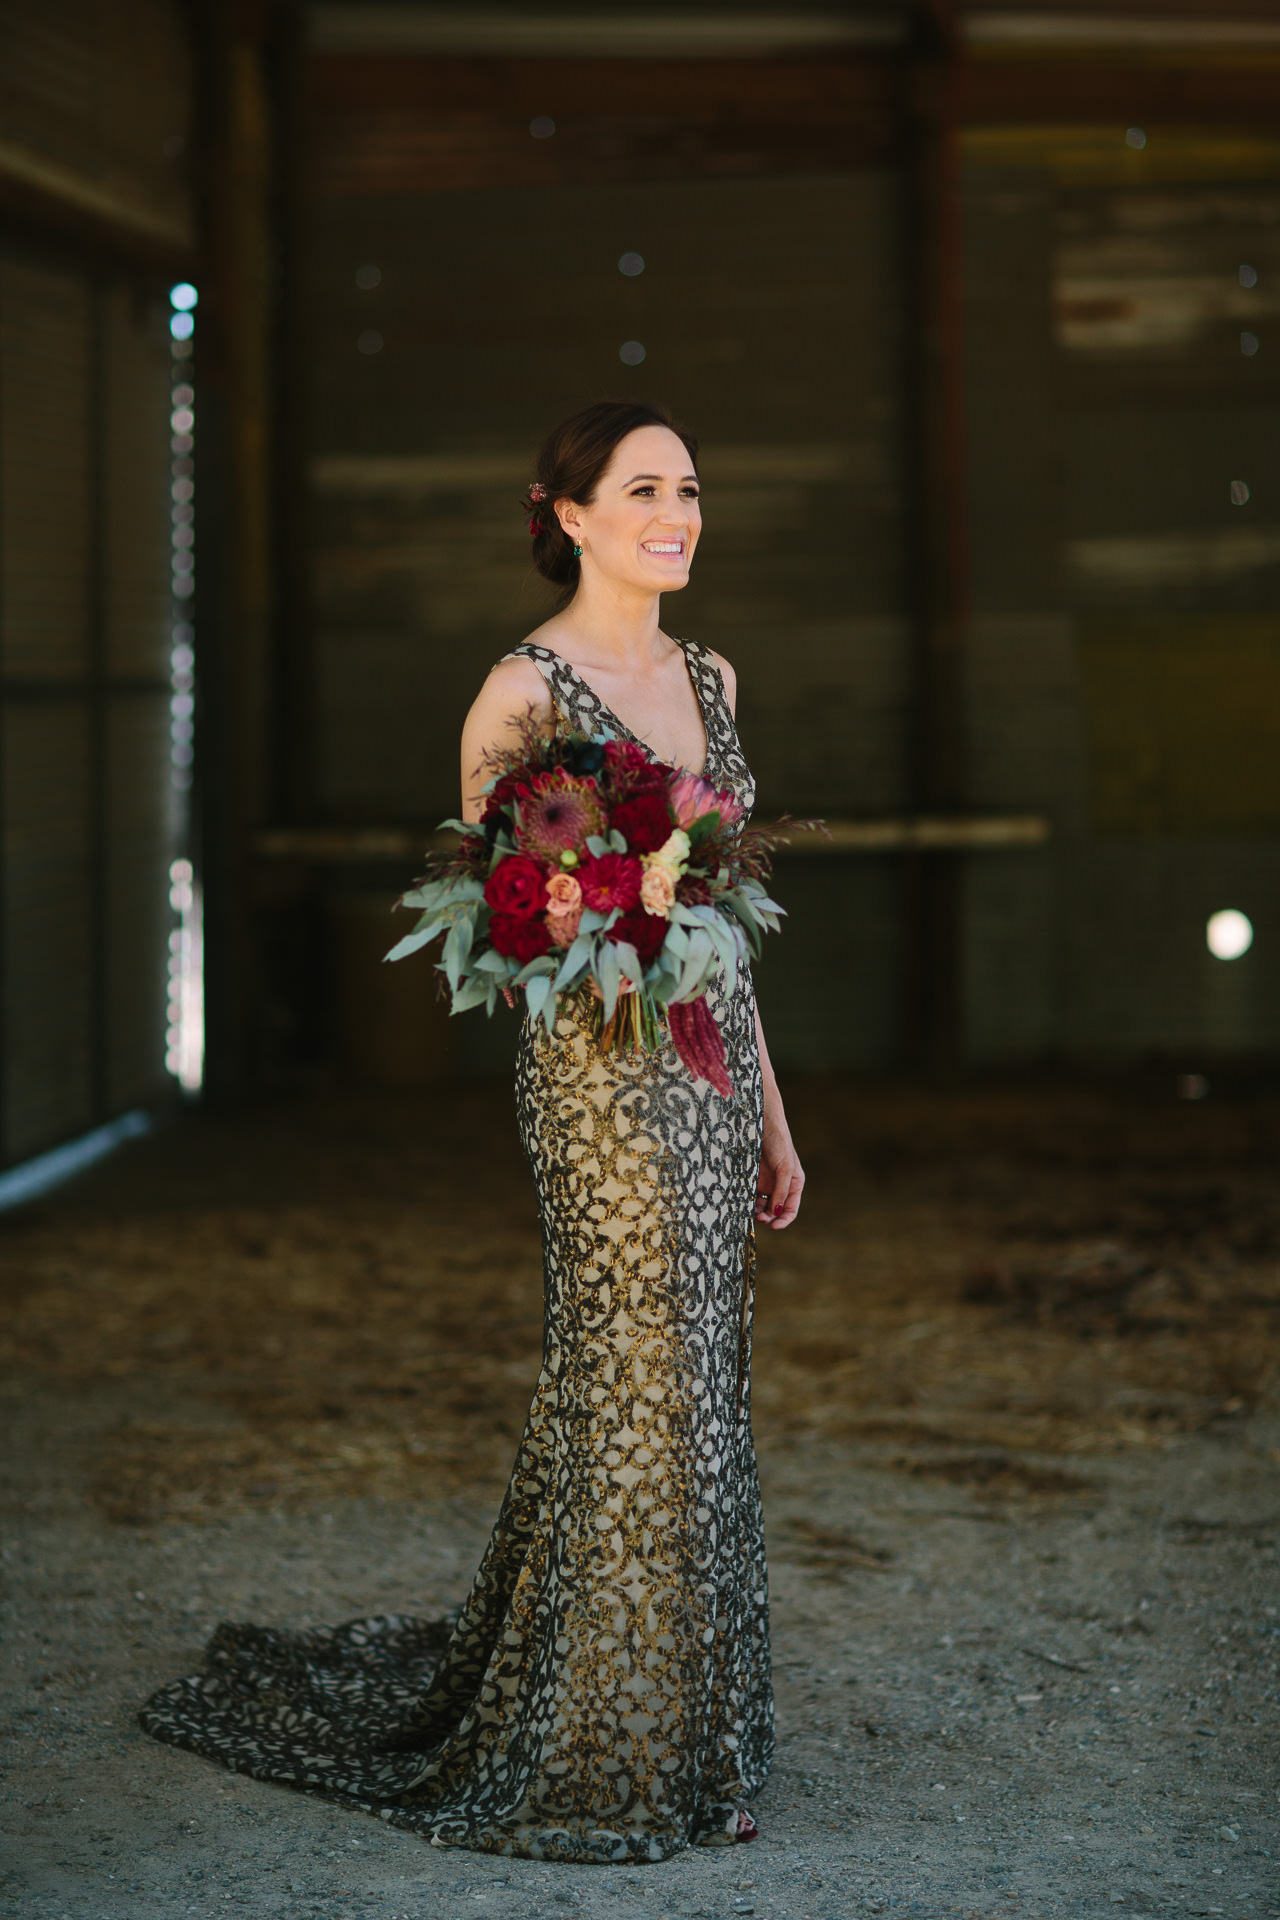 Bride poses with flowers and gold wedding dress